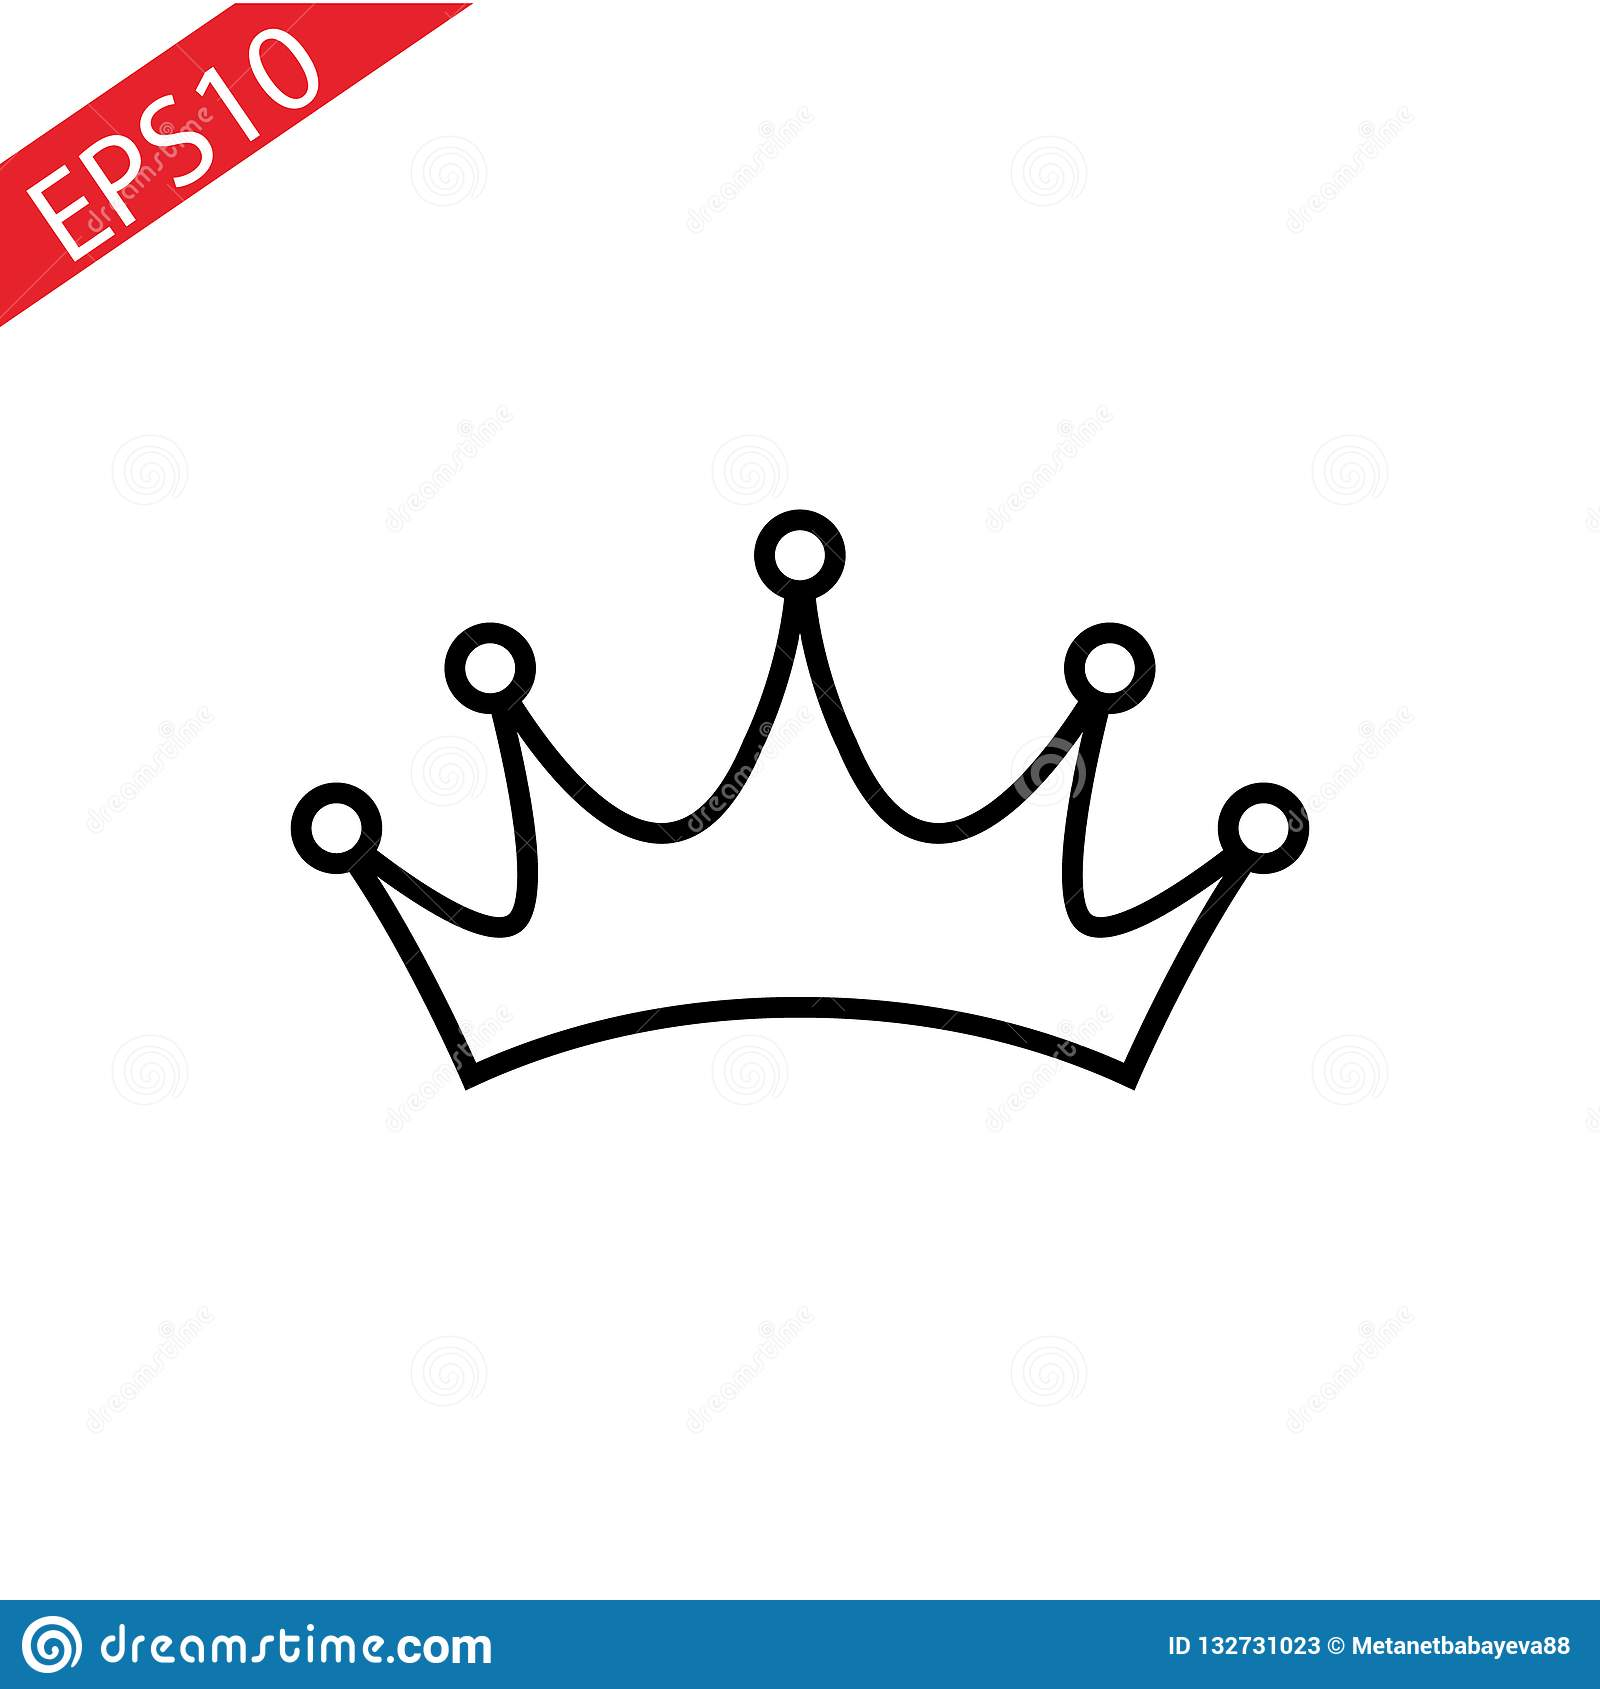 Crown Line Icon Outline Vector Sign Linear Style Pictogram Isolated On White Vip Symbol Logo Illustration Stock Vector Illustration Of Background Design 132731023 300+ vectors, stock photos & psd files. https www dreamstime com crown line icon outline vector sign linear style pictogram isolated white vip symbol logo illustration eps crown line icon image132731023